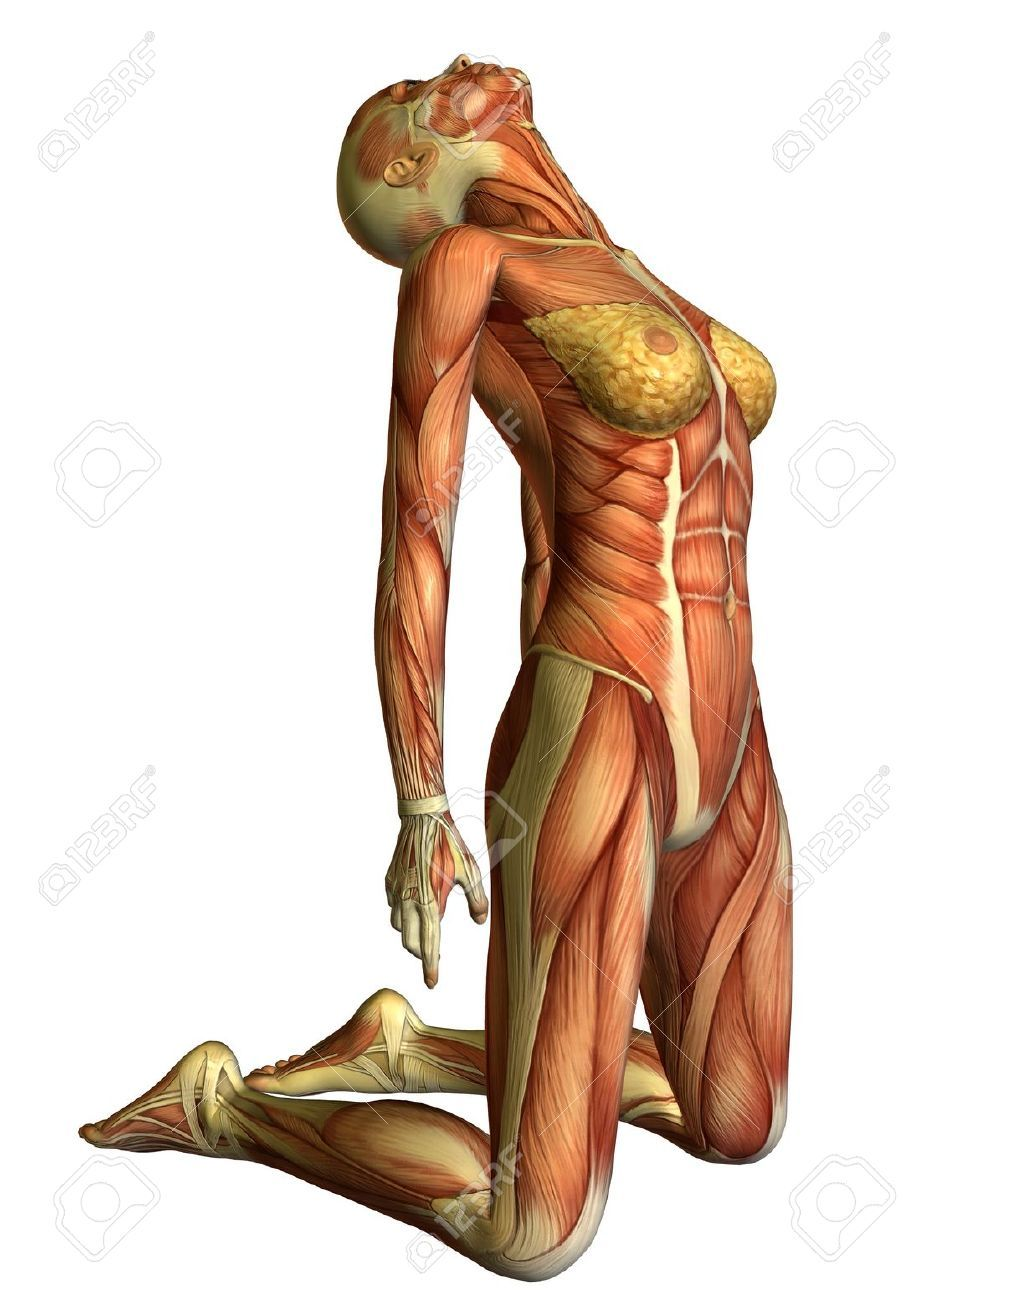 back muscle anatomy woman - Google Search | MUSCLES AND ANATOMY ...